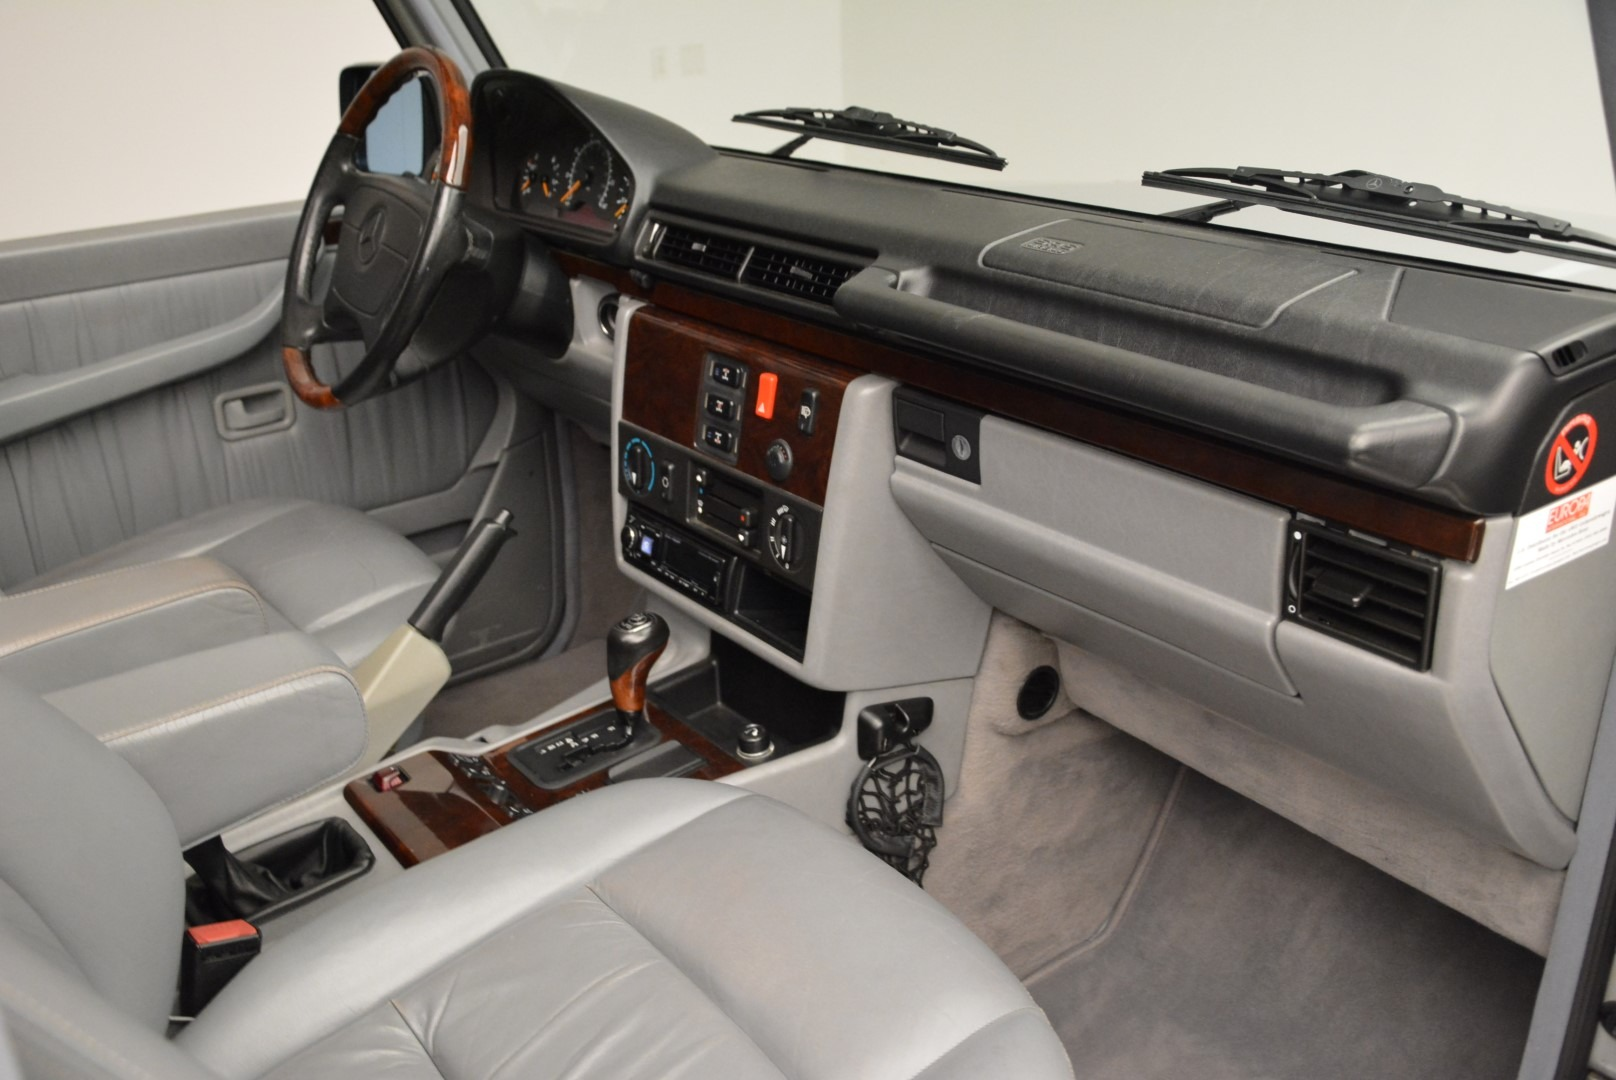 Used 1999 Mercedes Benz G500 Cabriolet For Sale In Greenwich, CT 1961_p26